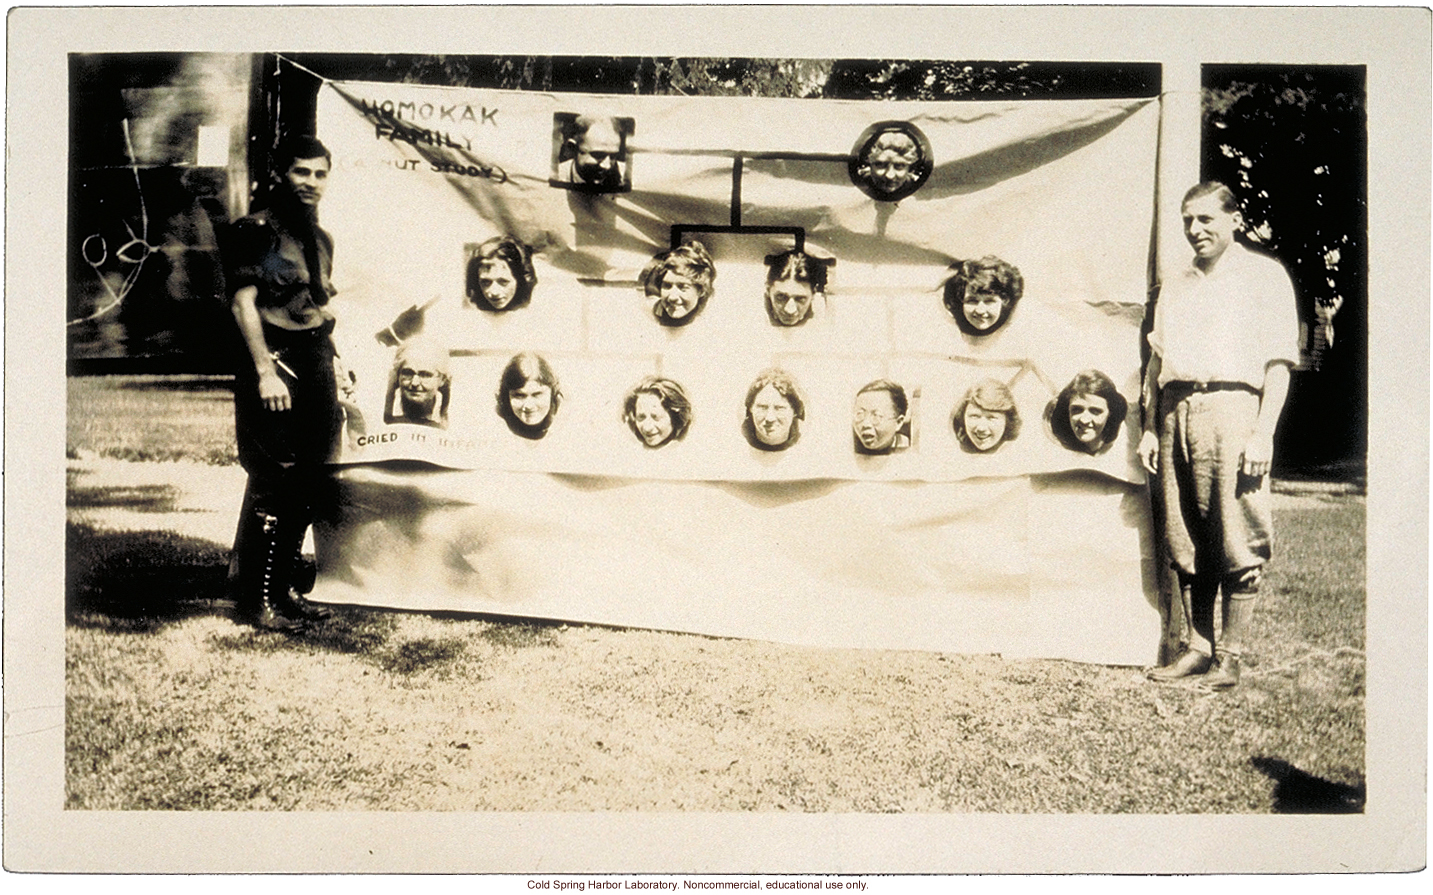 &quote;Homokak Family: A Nut Study,&quote; pedigree parody by Eugenics Record Office Field Worker Training Class of 1923